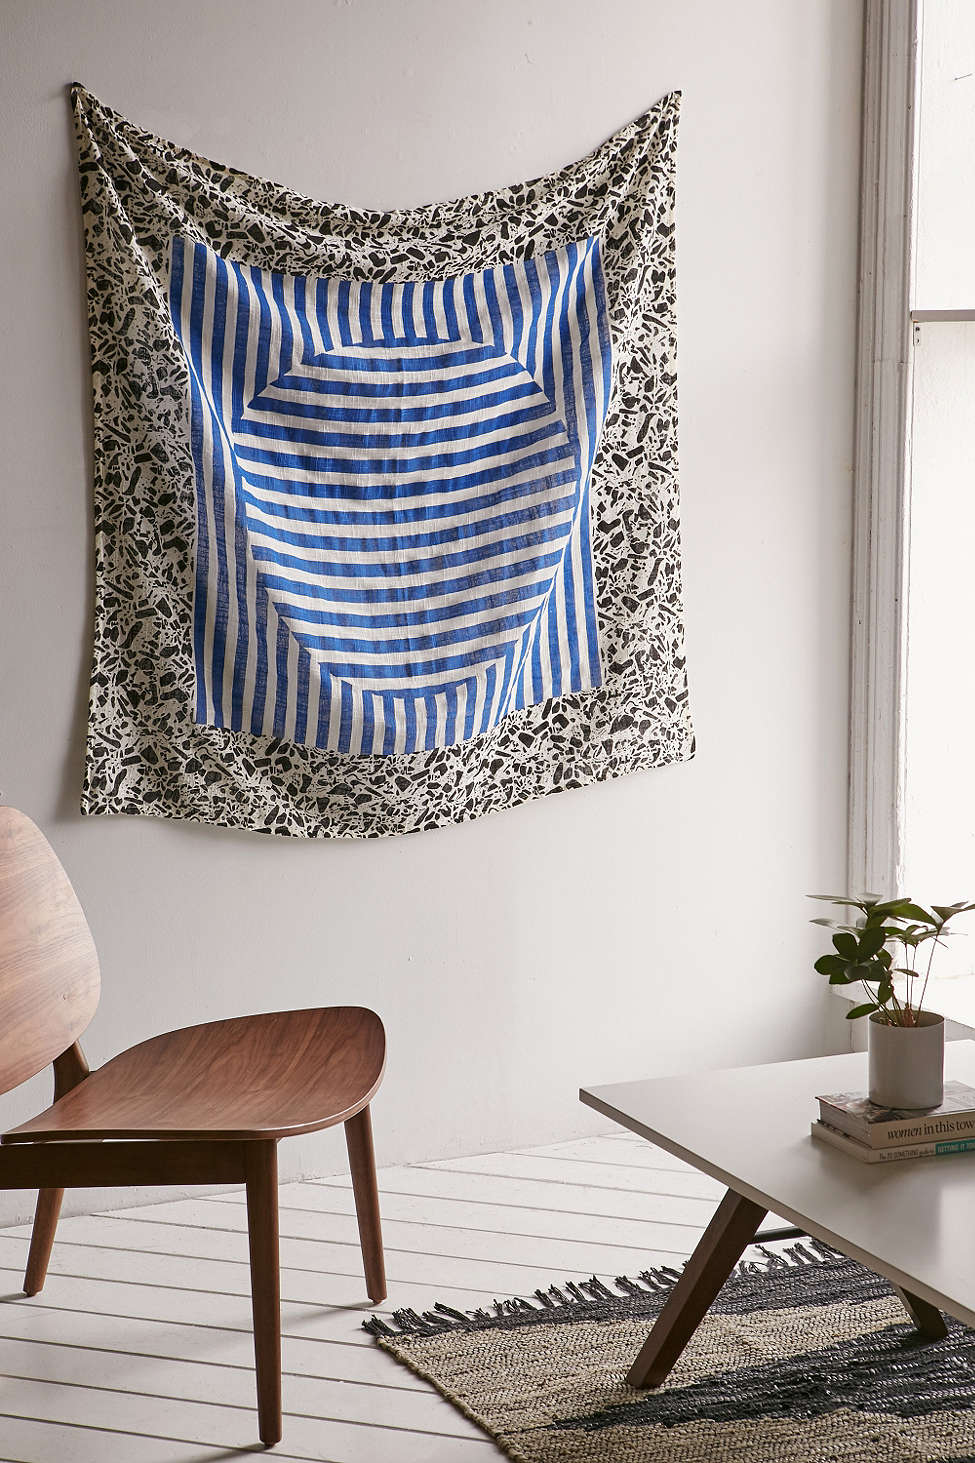 Terrazzo tapestry with stripes from Urban Outfitters